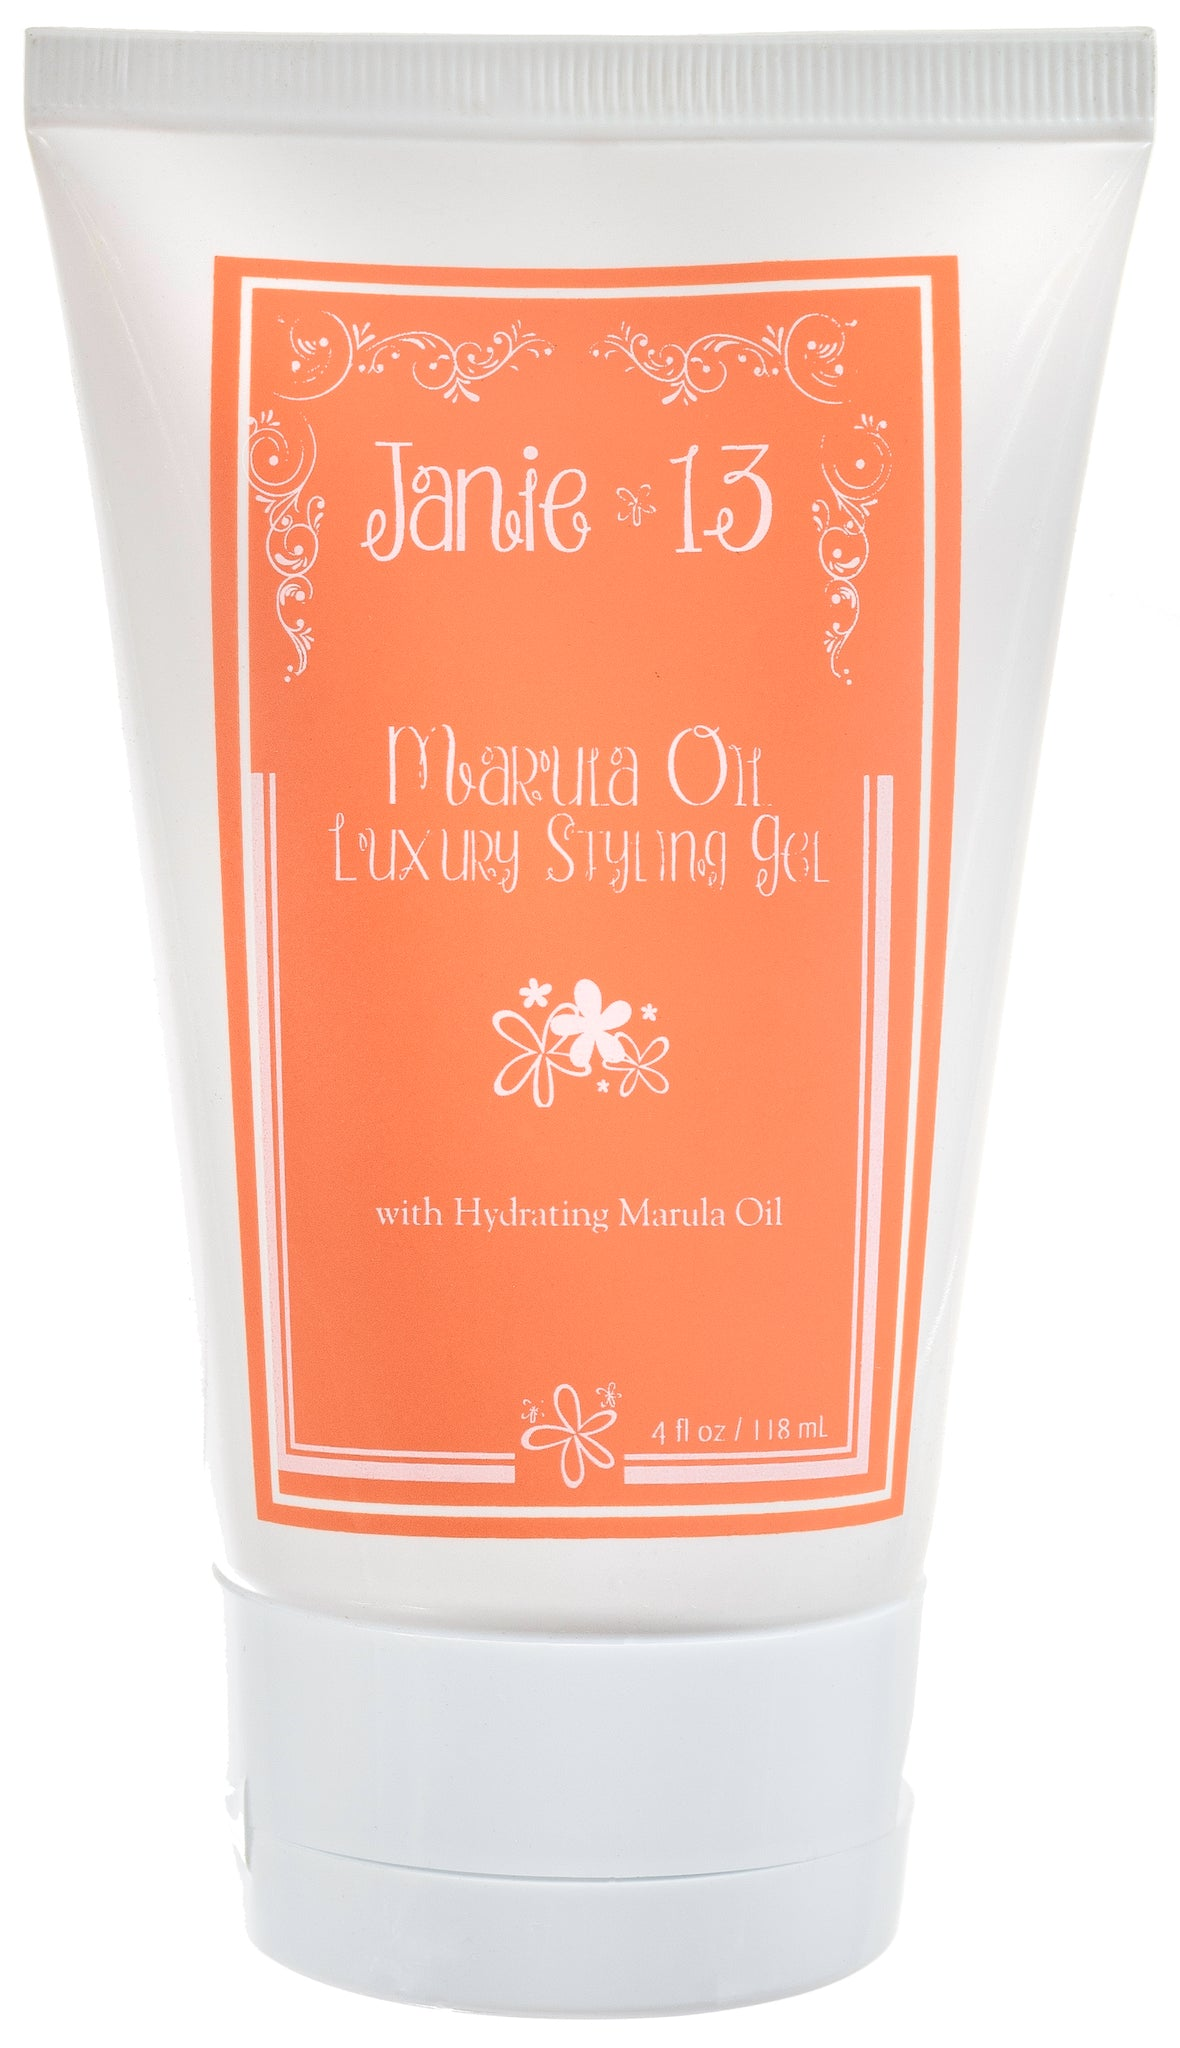 Marula Oil Luxury Styling Gel  4.0z - Janie 13 Hair Products best hair products for sulphate free shampoo and gluten free products